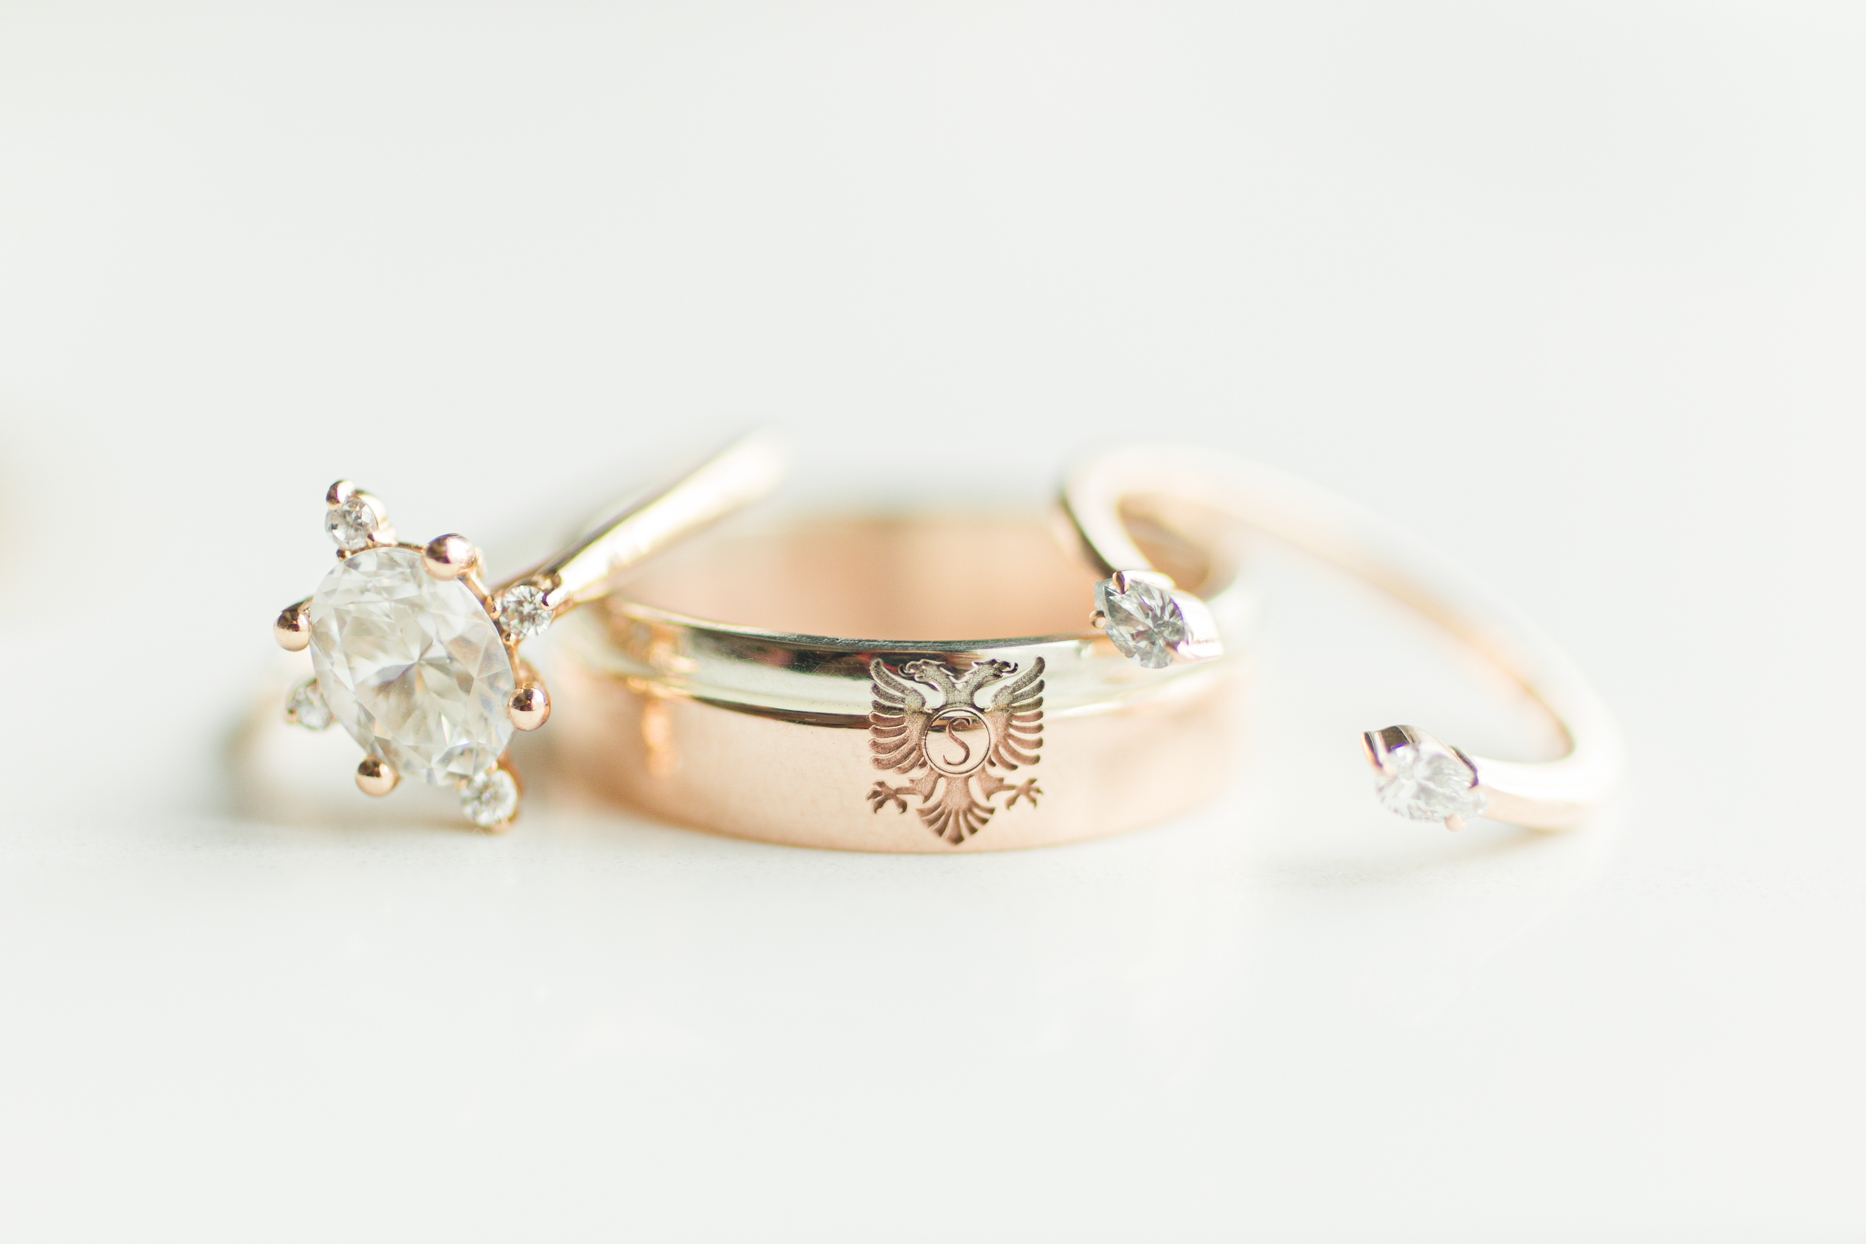 gold wedding bands and diamond rings